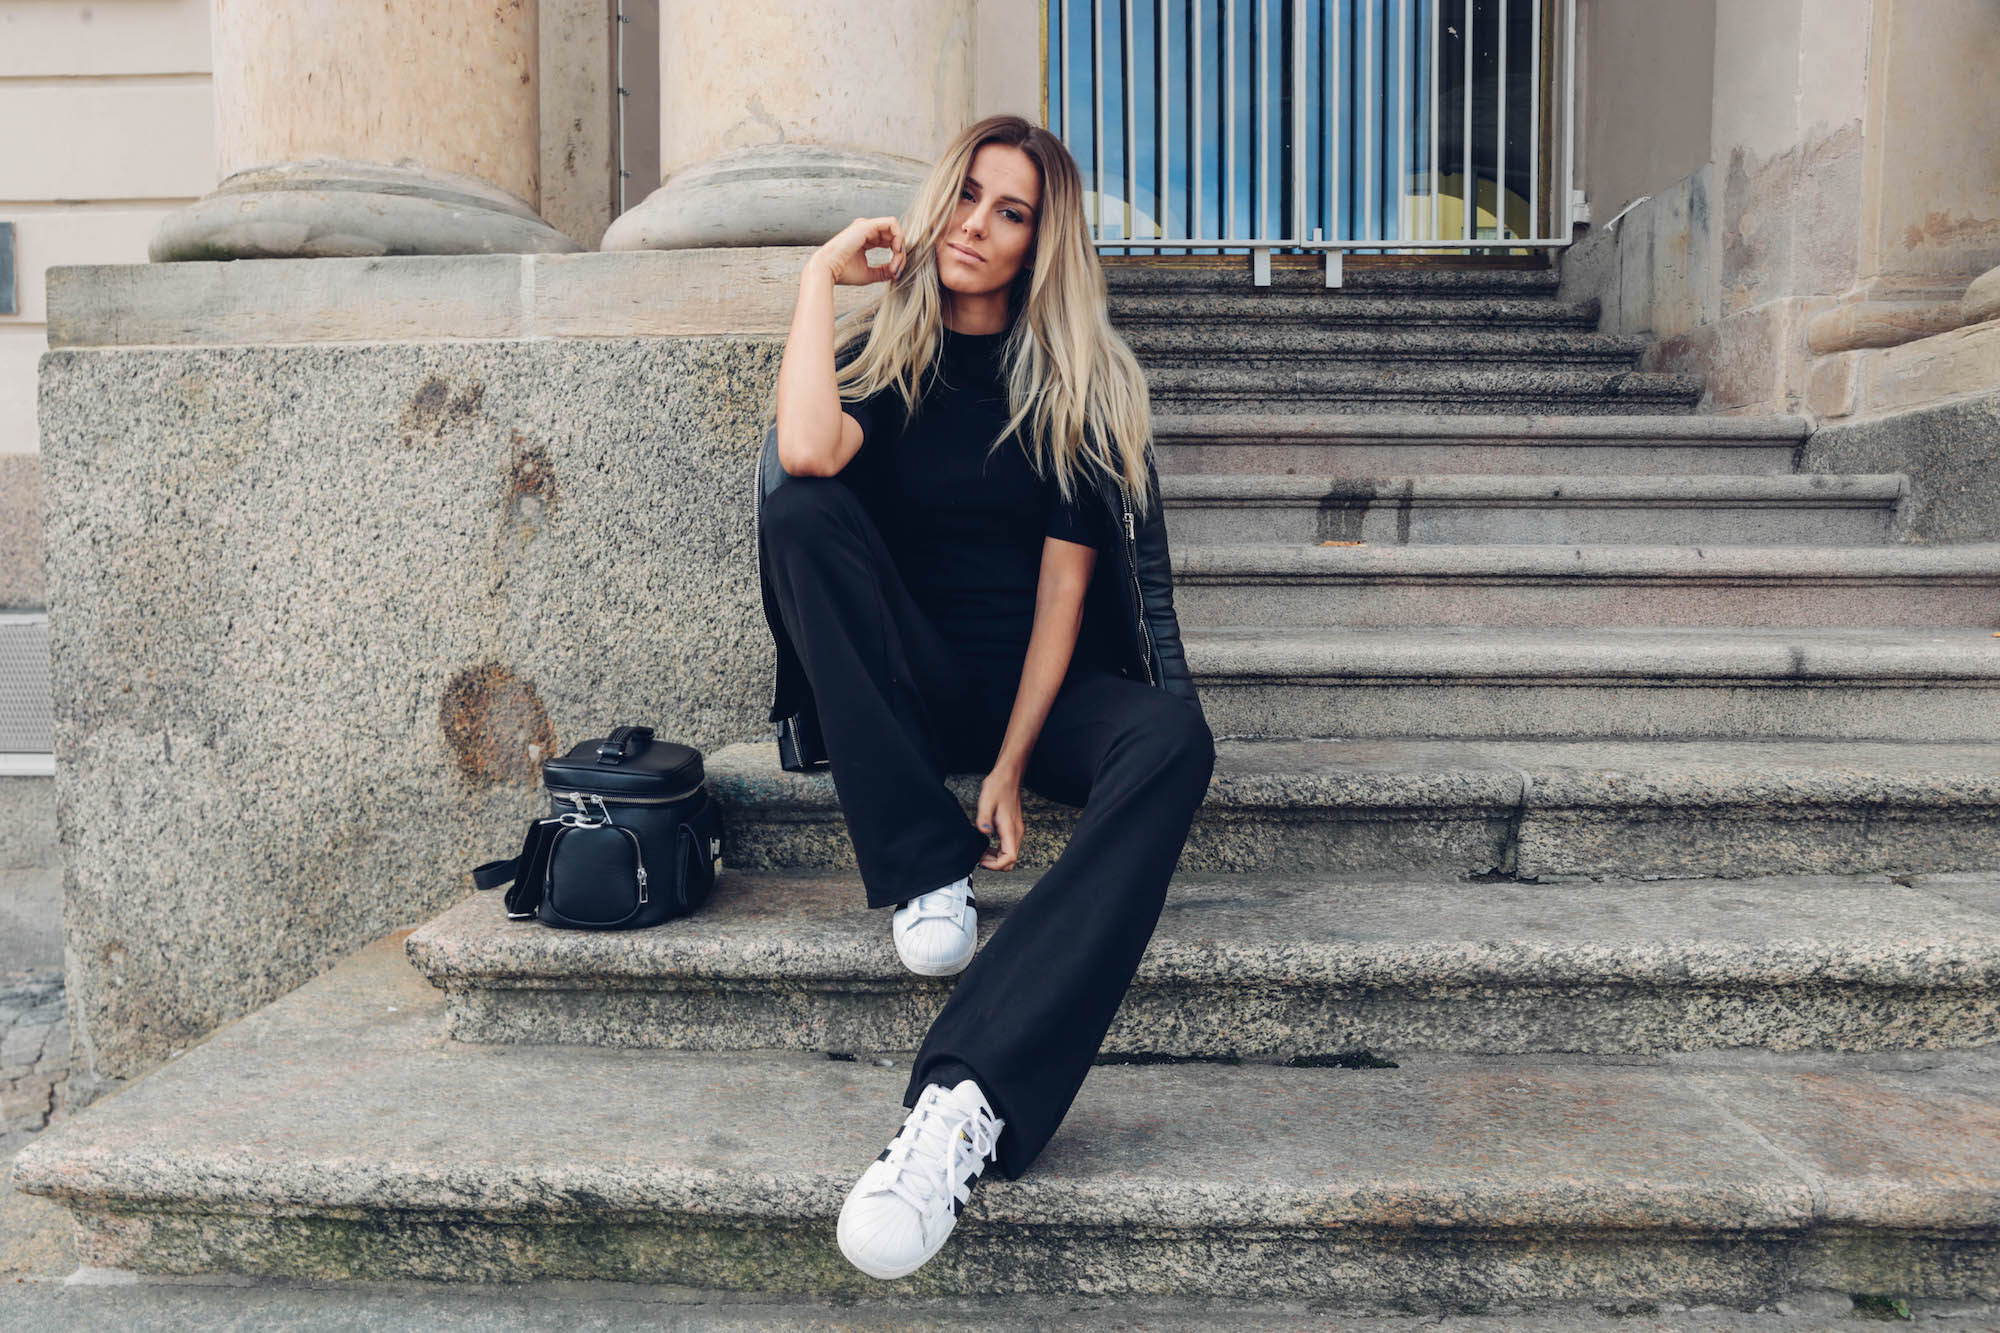 Break up your black on black outfit with some pristine white sneakers. Via Skopljak. Top/Trousers: Gina Tricot, Shoes: Adidas, Bag: Rut & Circle.